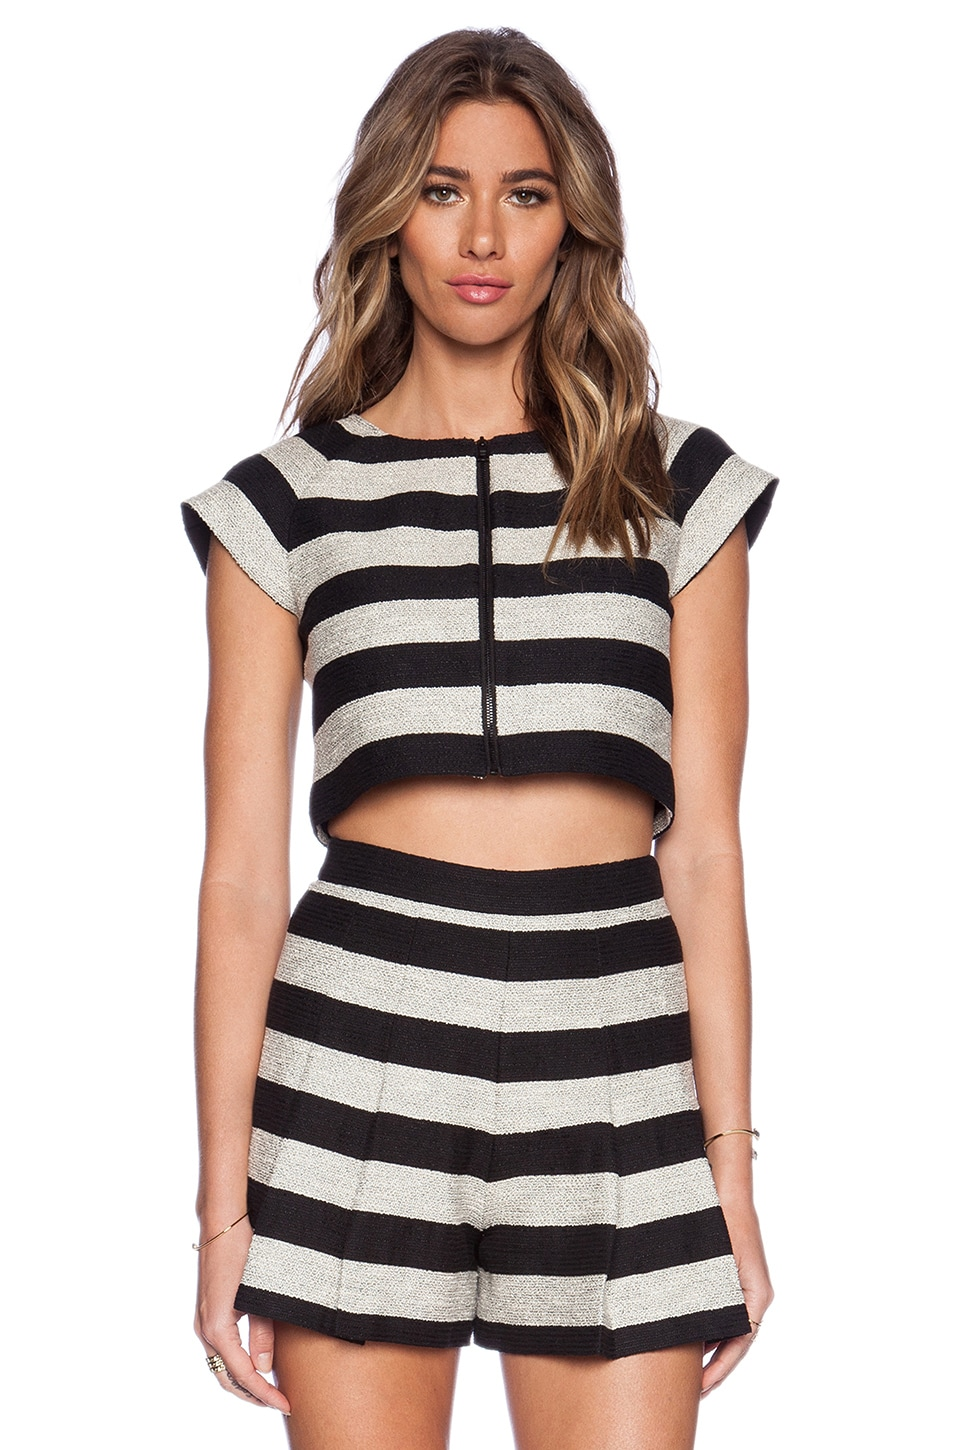 Alice + Olivia Amy Dual Front Boxy Top in Black & Silver